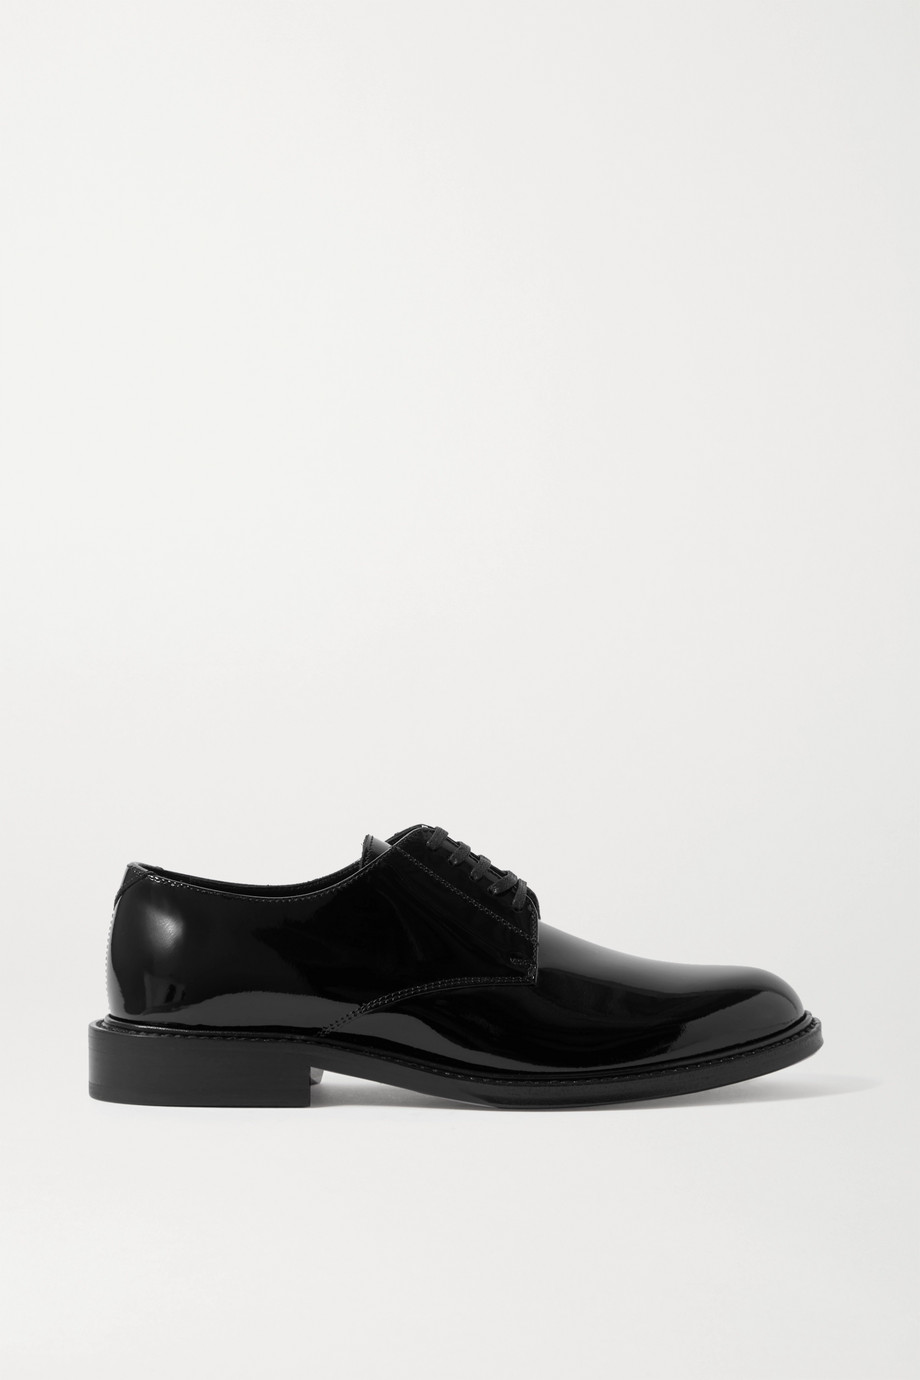 SAINT LAURENT Cromel patent-leather brogues